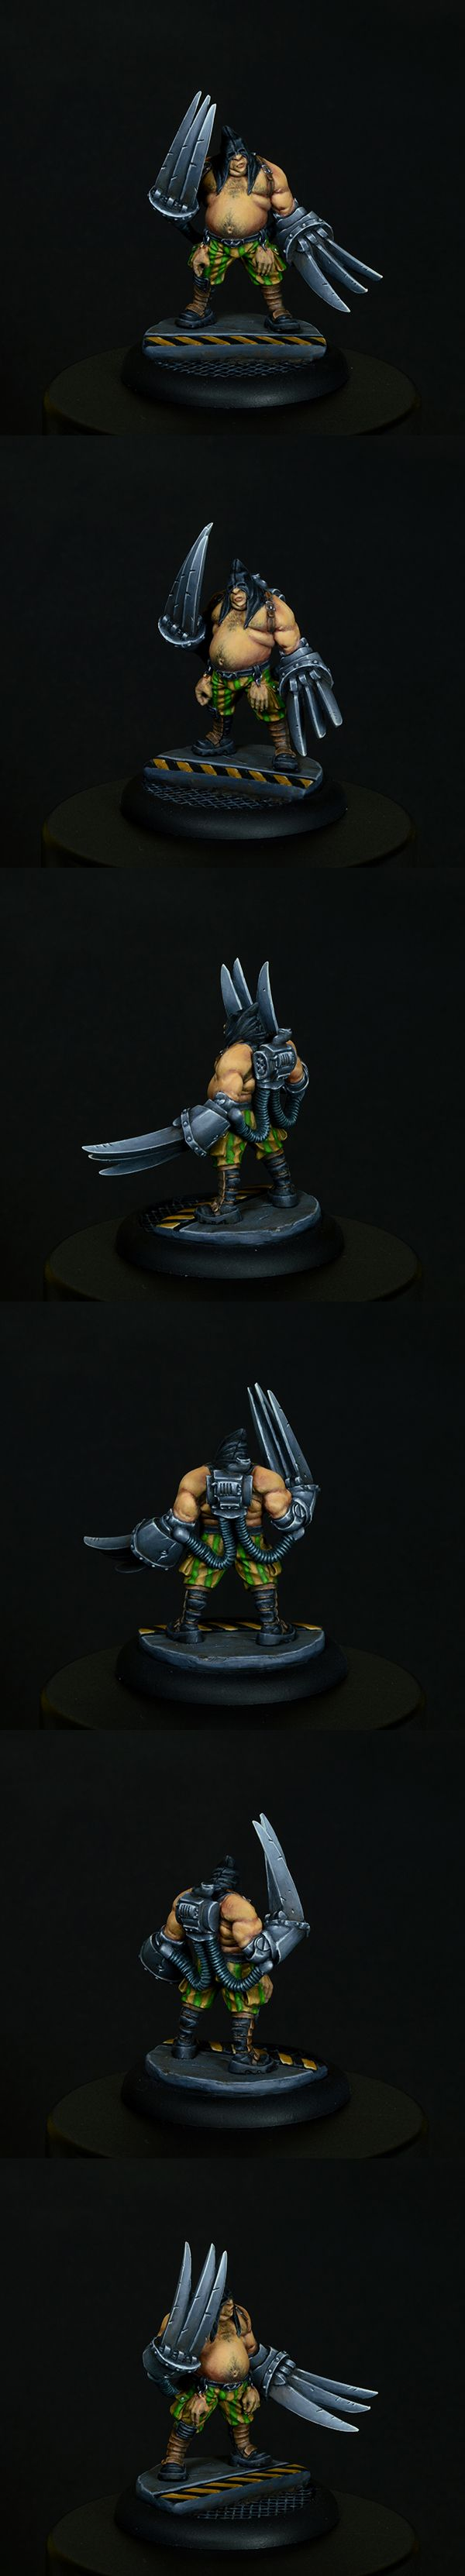 The Executioner Malifaux